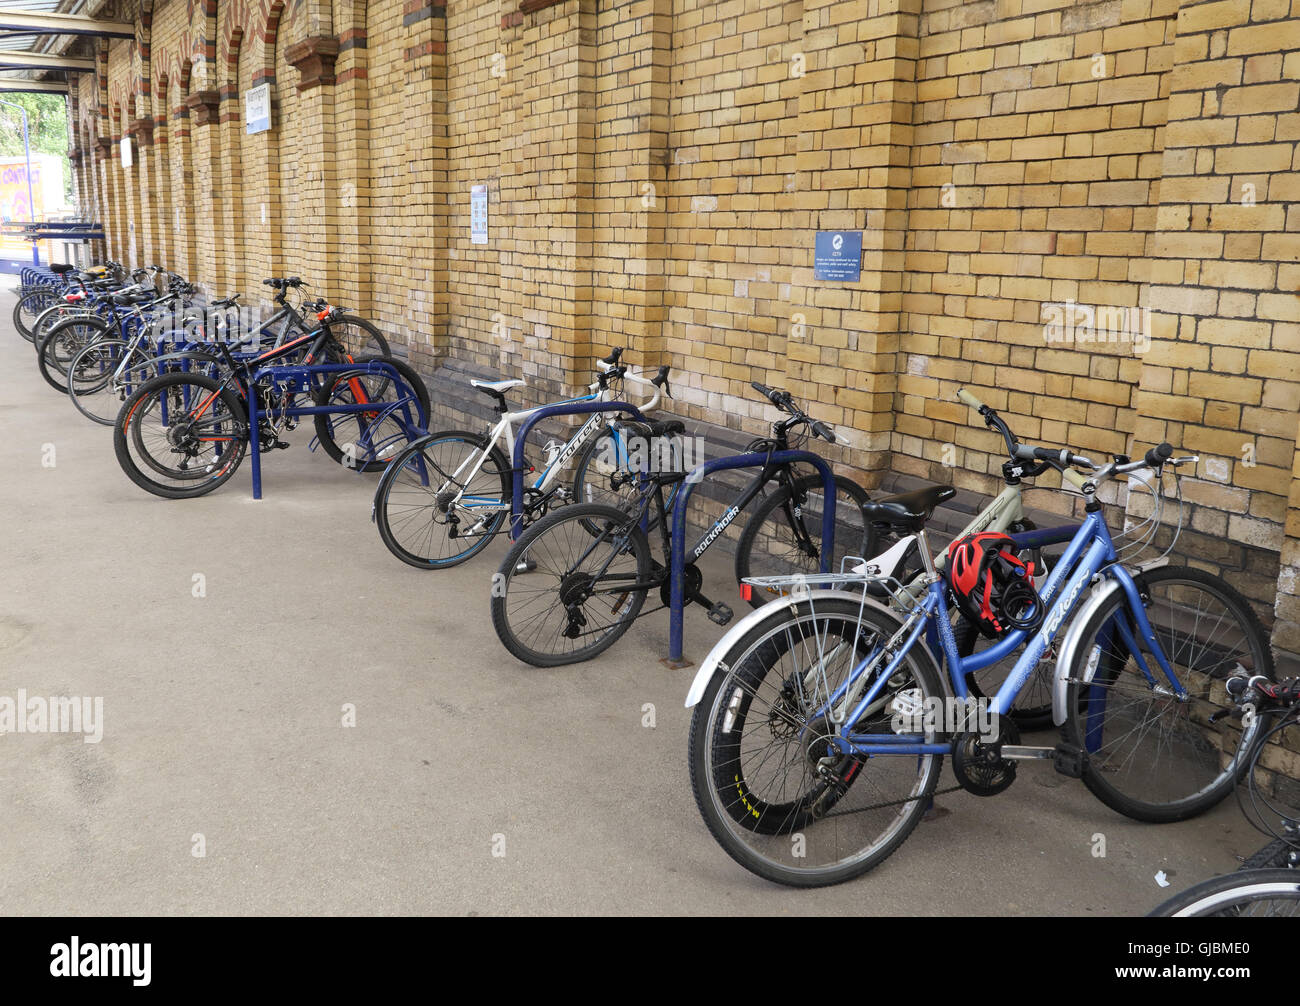 Bicycle / cycle / bike storage platform 1, Warrington Central Railway station, town centre, Cheshire, North West - Stock Image